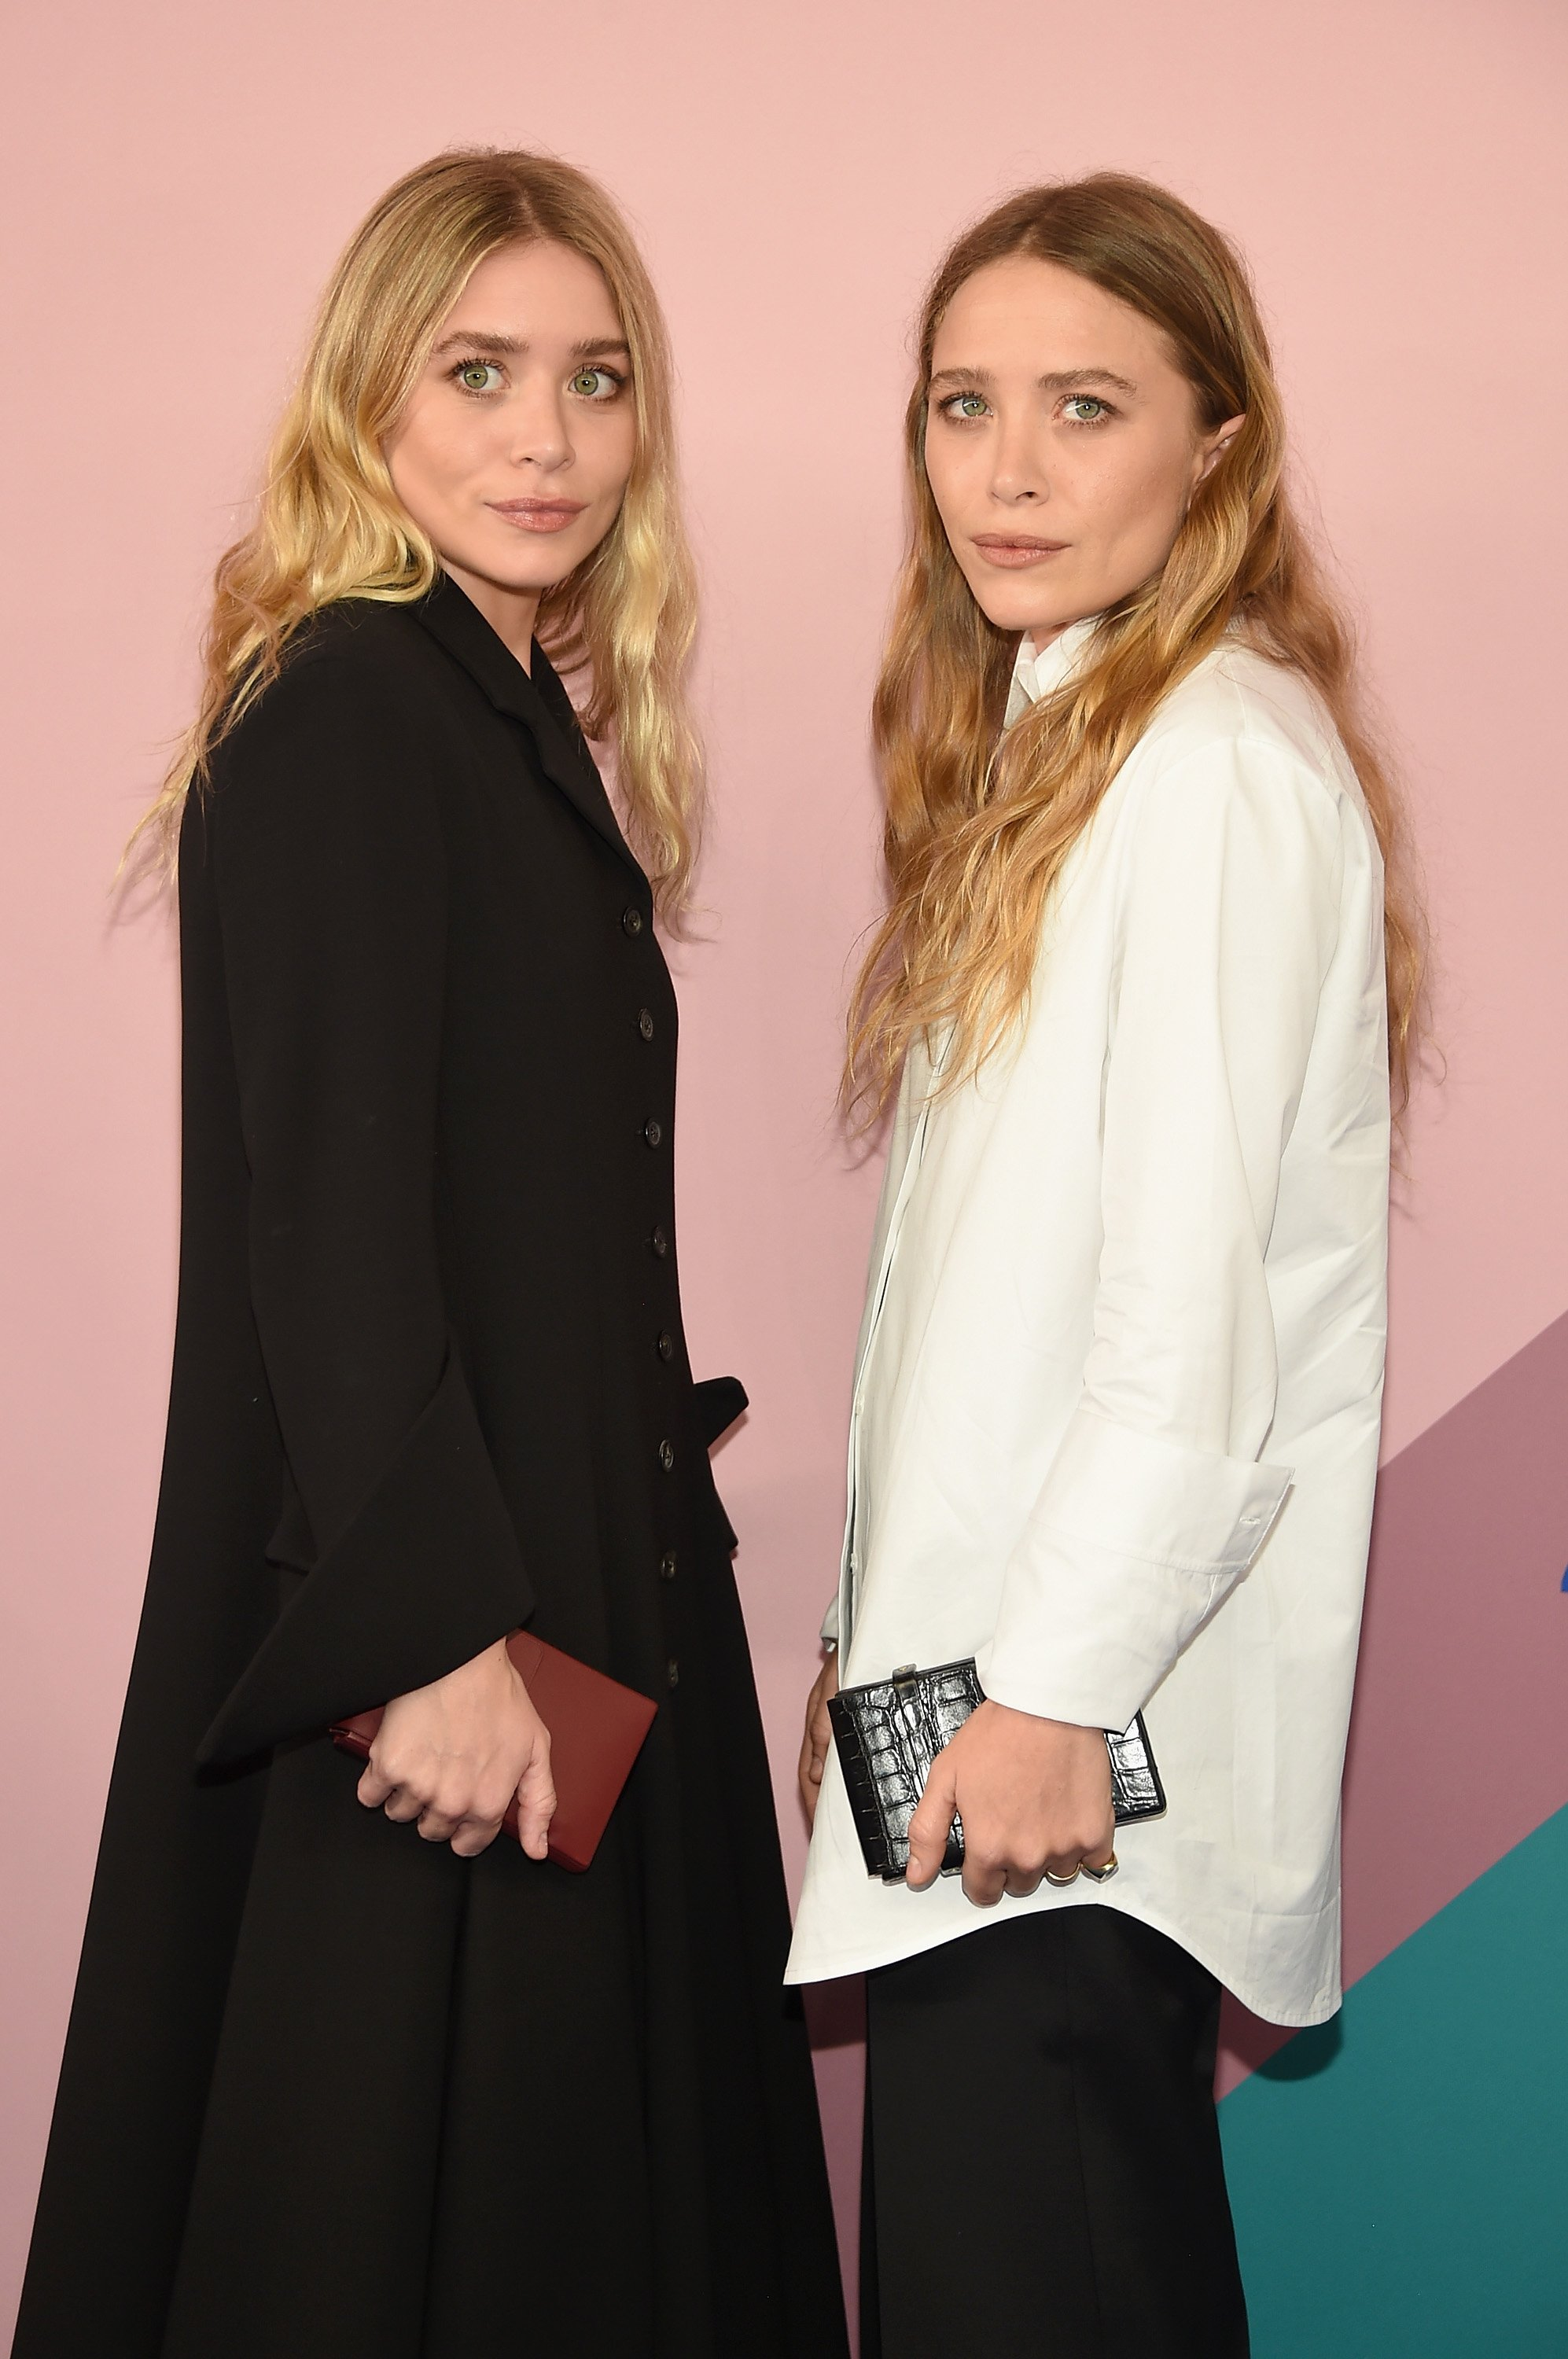 Ashley and Mary-Kate Olsen on June 5, 2017 in New York City | Photo: Getty Images